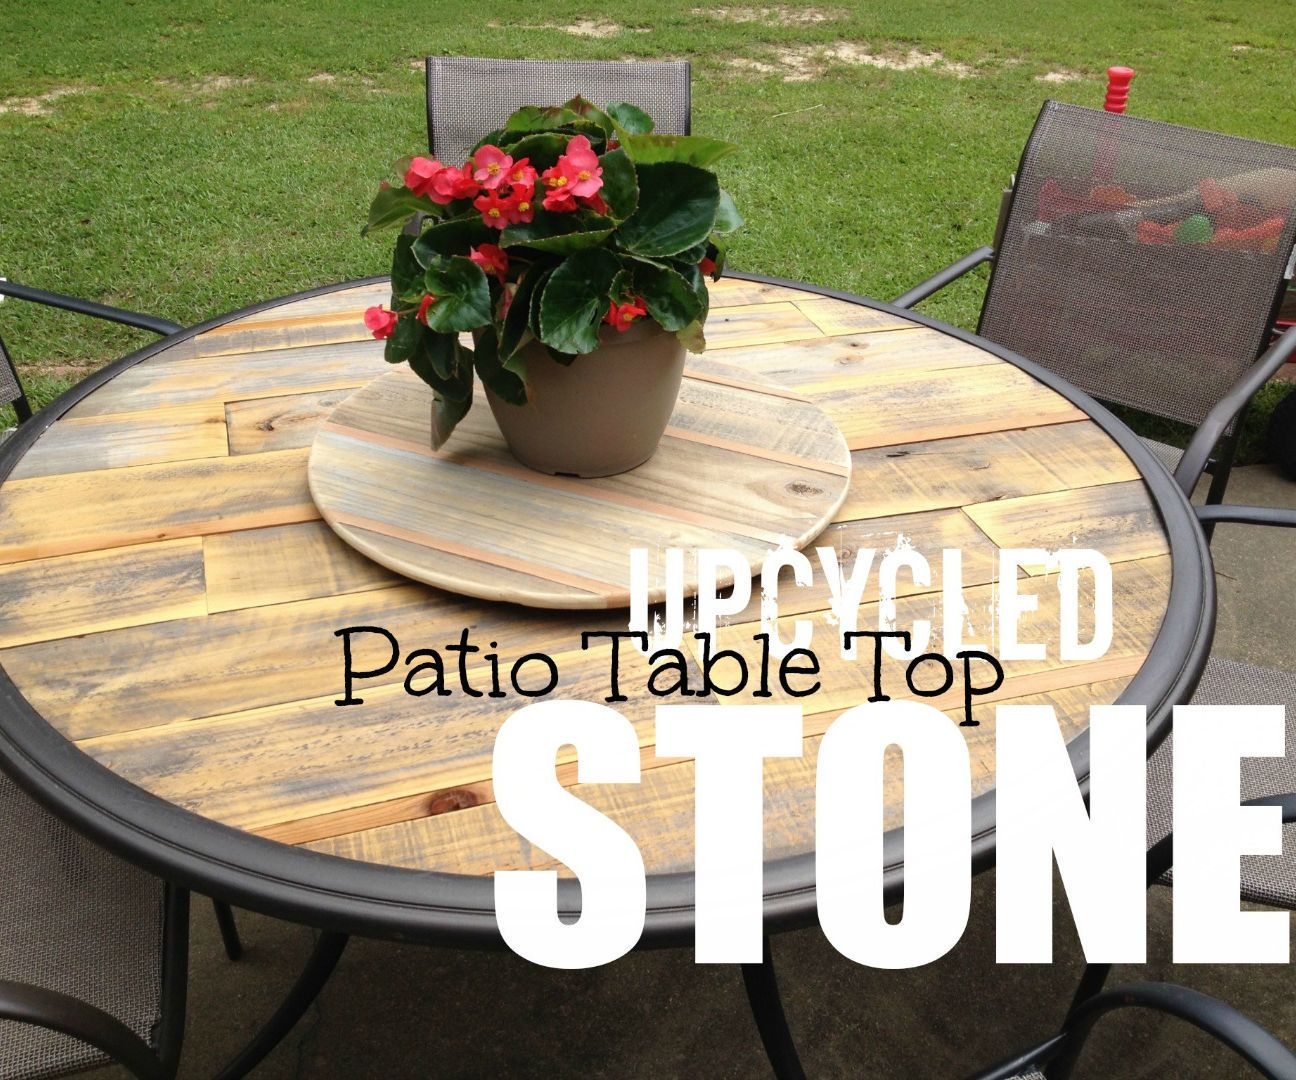 How to Upcycle a Broken Patio Table